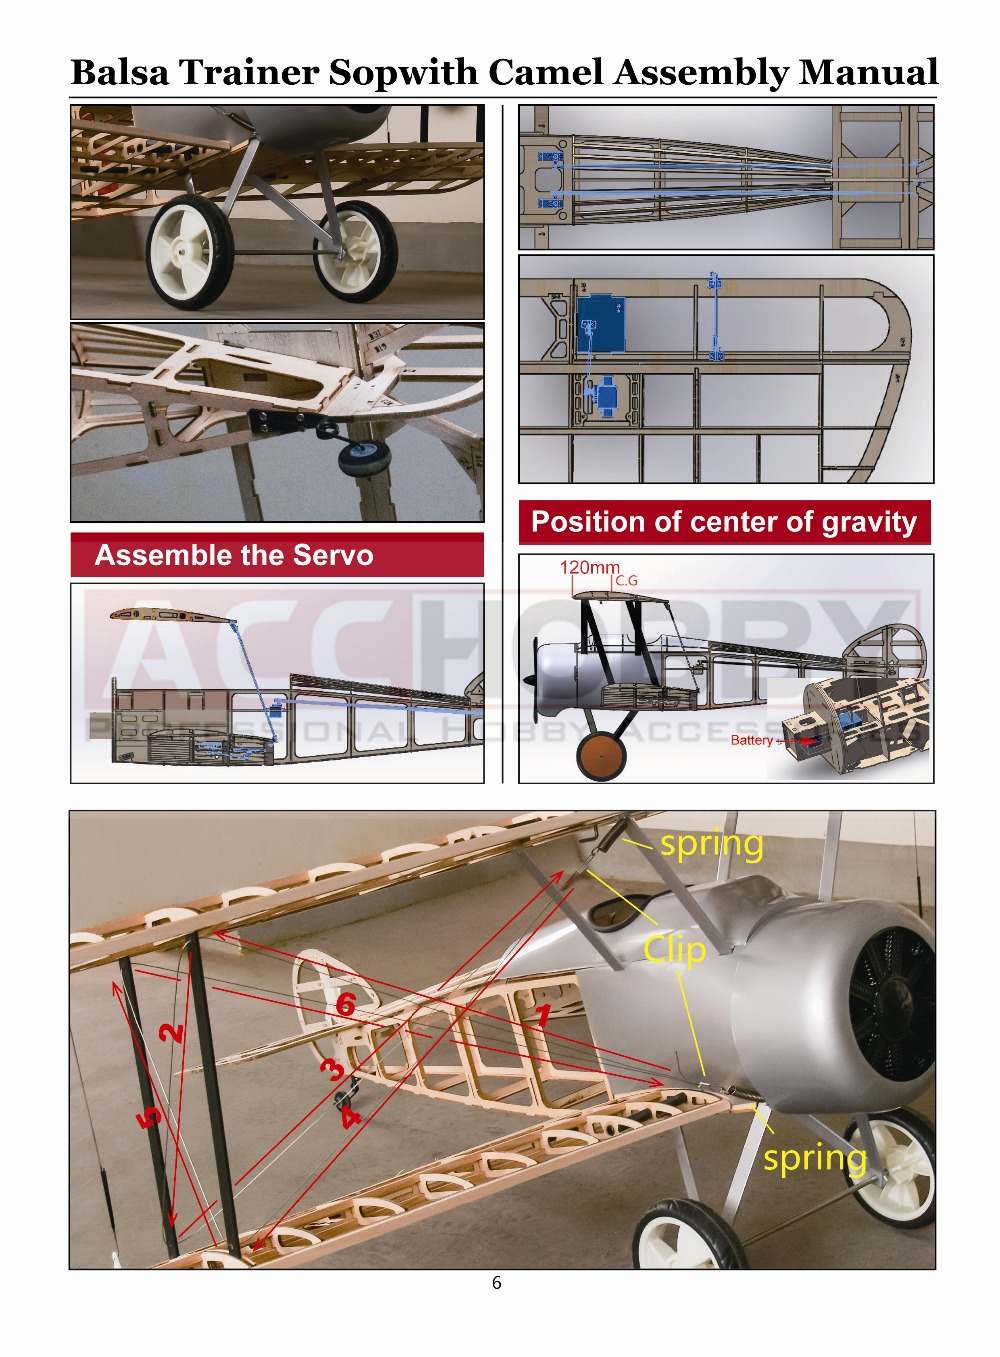 Sopwith Camel Ww1 Fighter Laser Cut 1520mm Gas Power And Electric Wiring Diagram Rc Plane Along With Wwi Aircraft 3 Views Getsubject Aeproduct